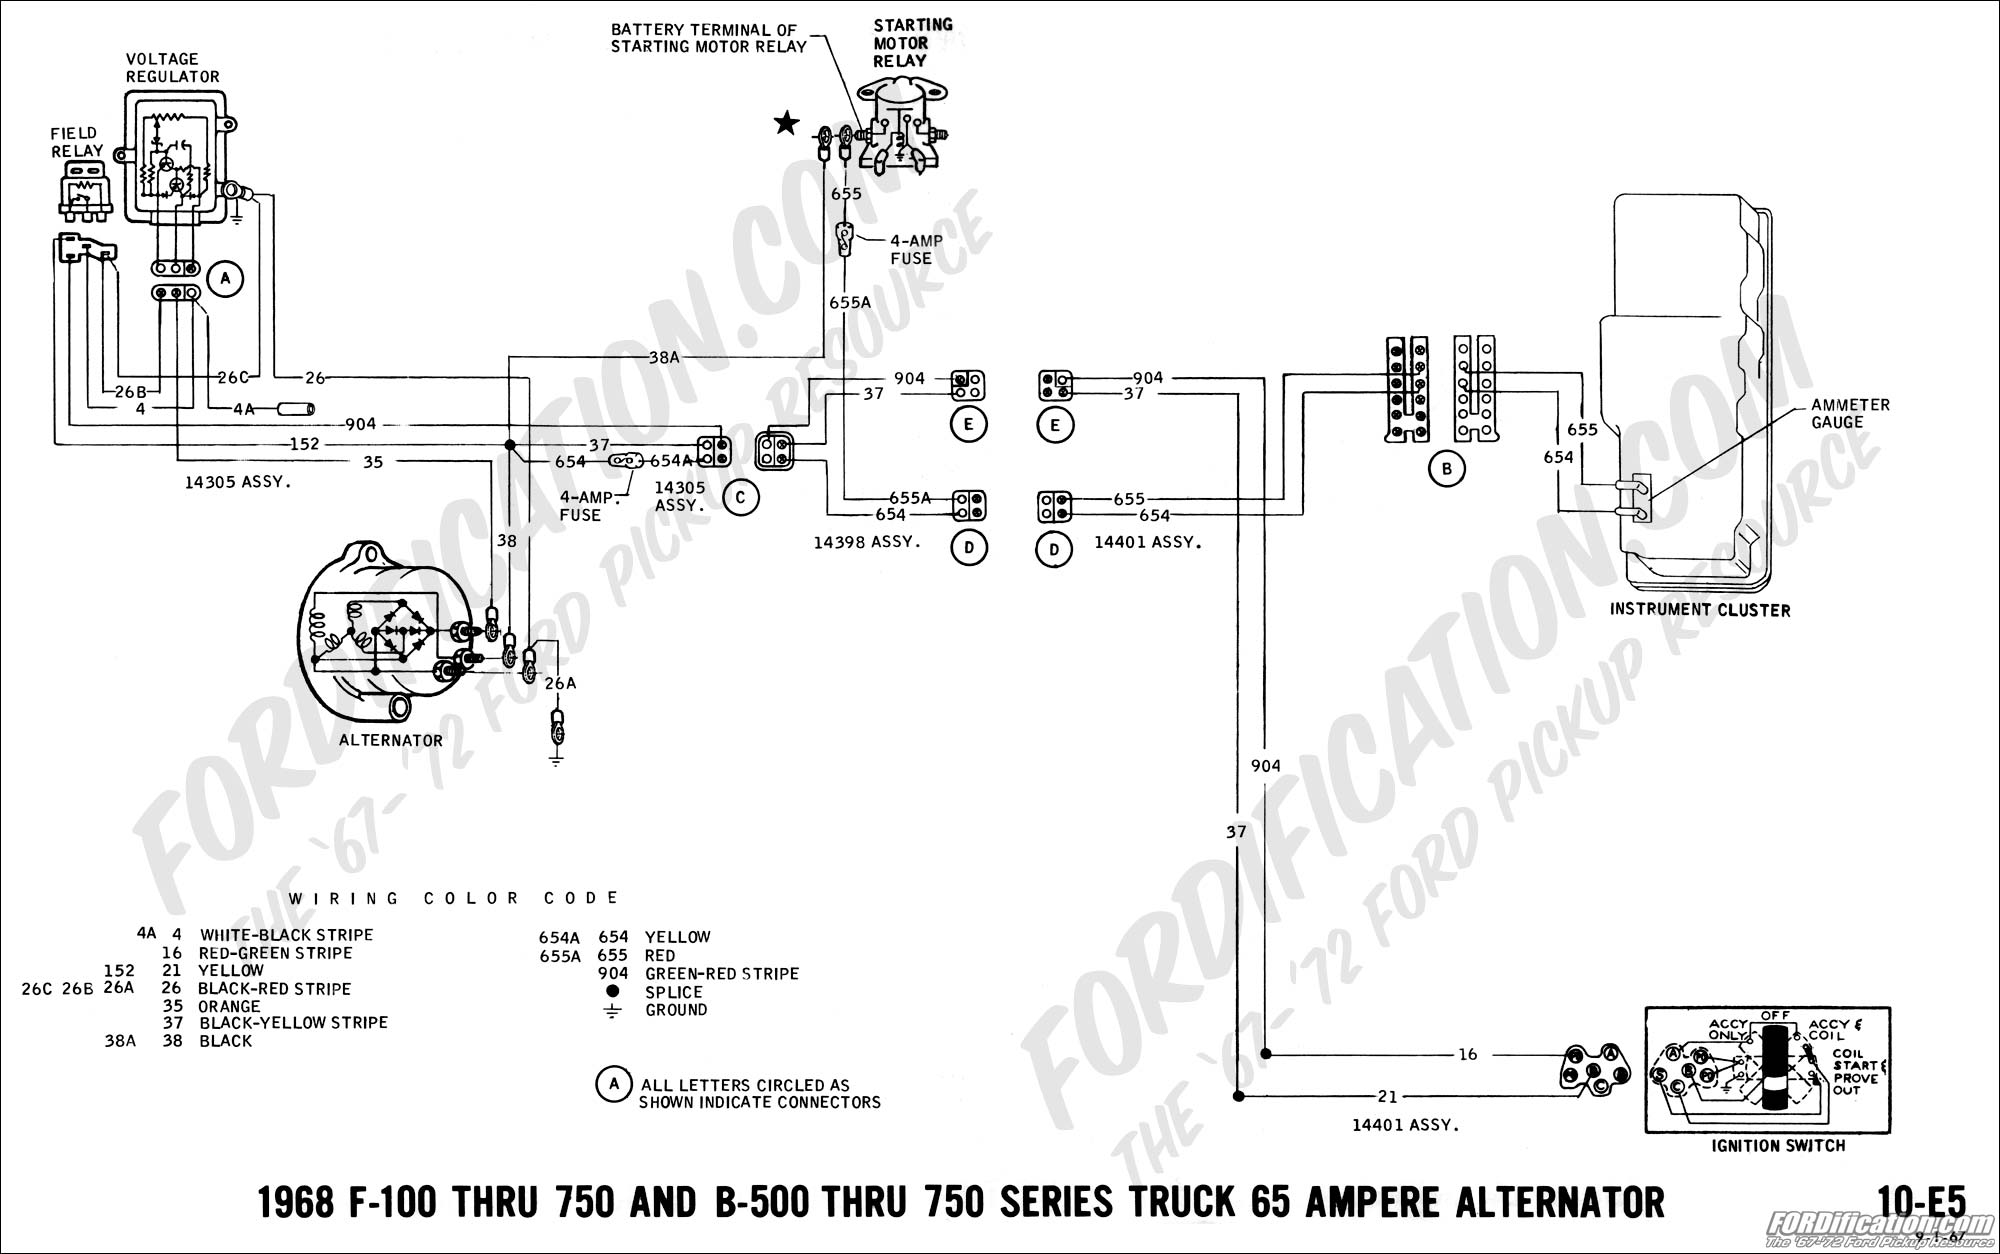 68 07 ford truck technical drawings and schematics section h wiring 1994 ford f150 ignition switch wiring diagram at honlapkeszites.co